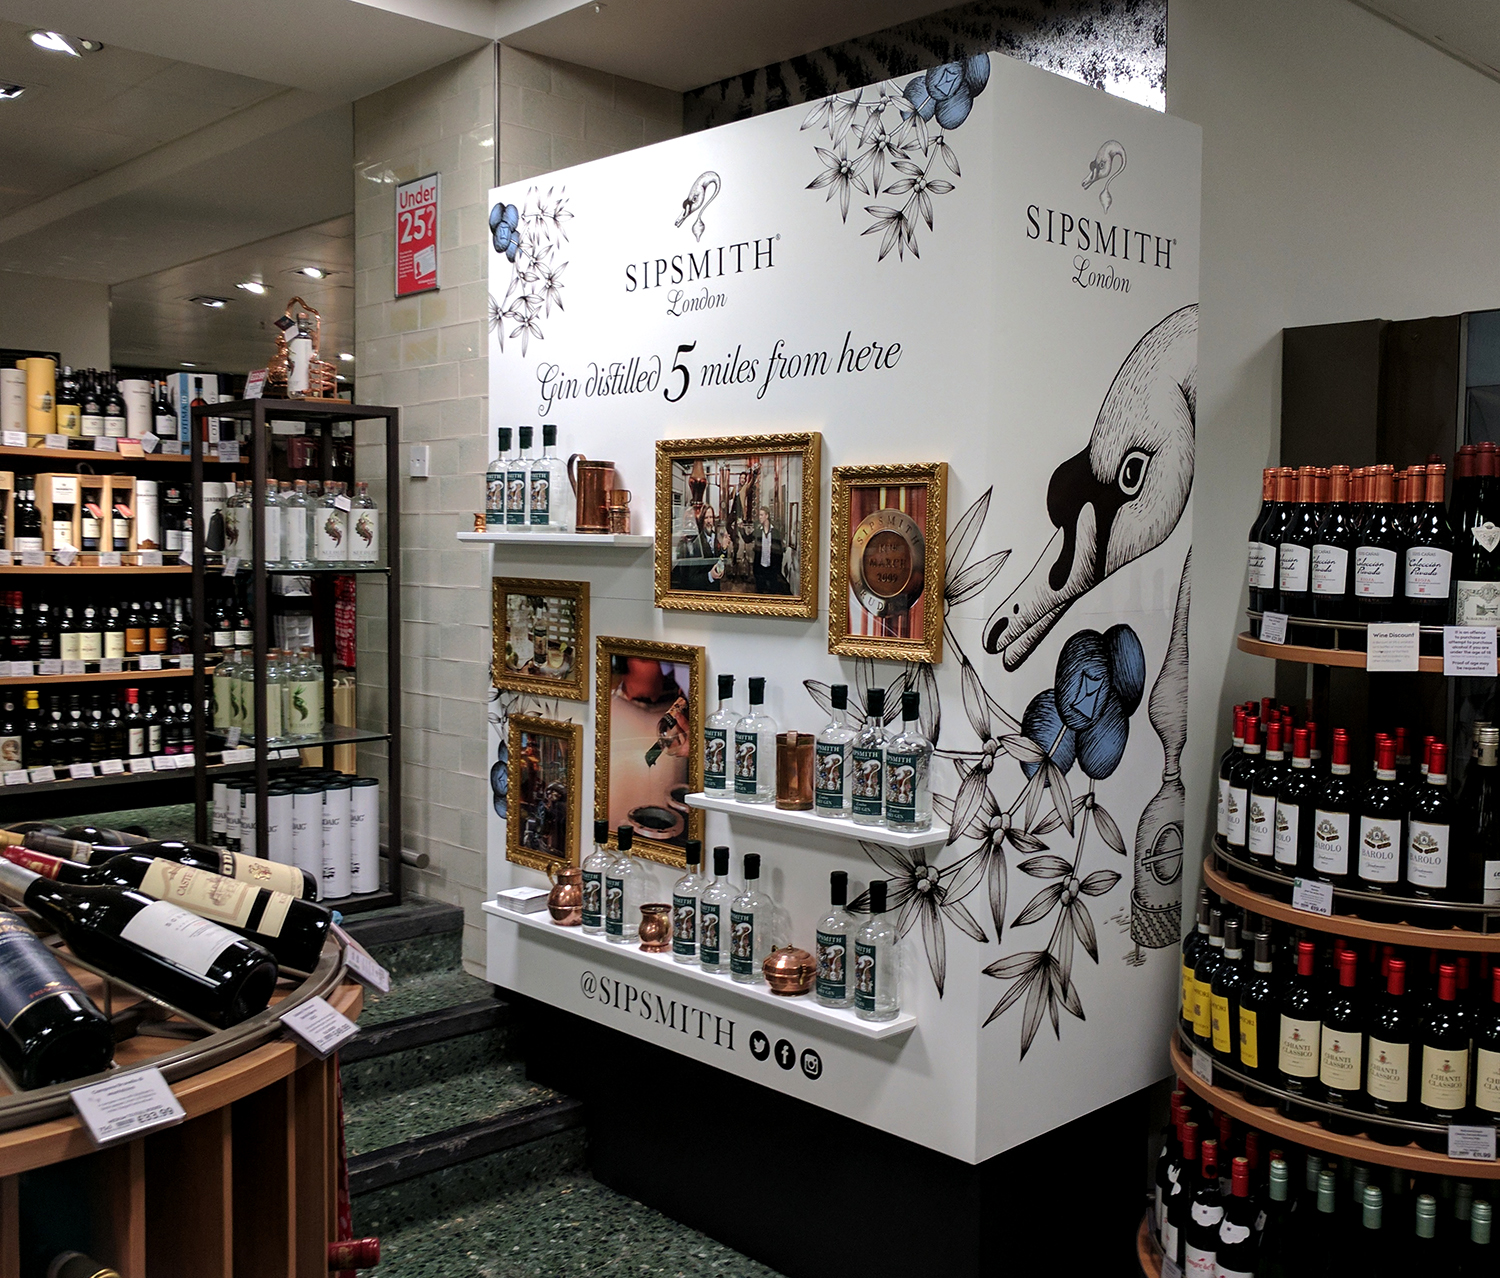 Display - Sipsmith - web.jpg